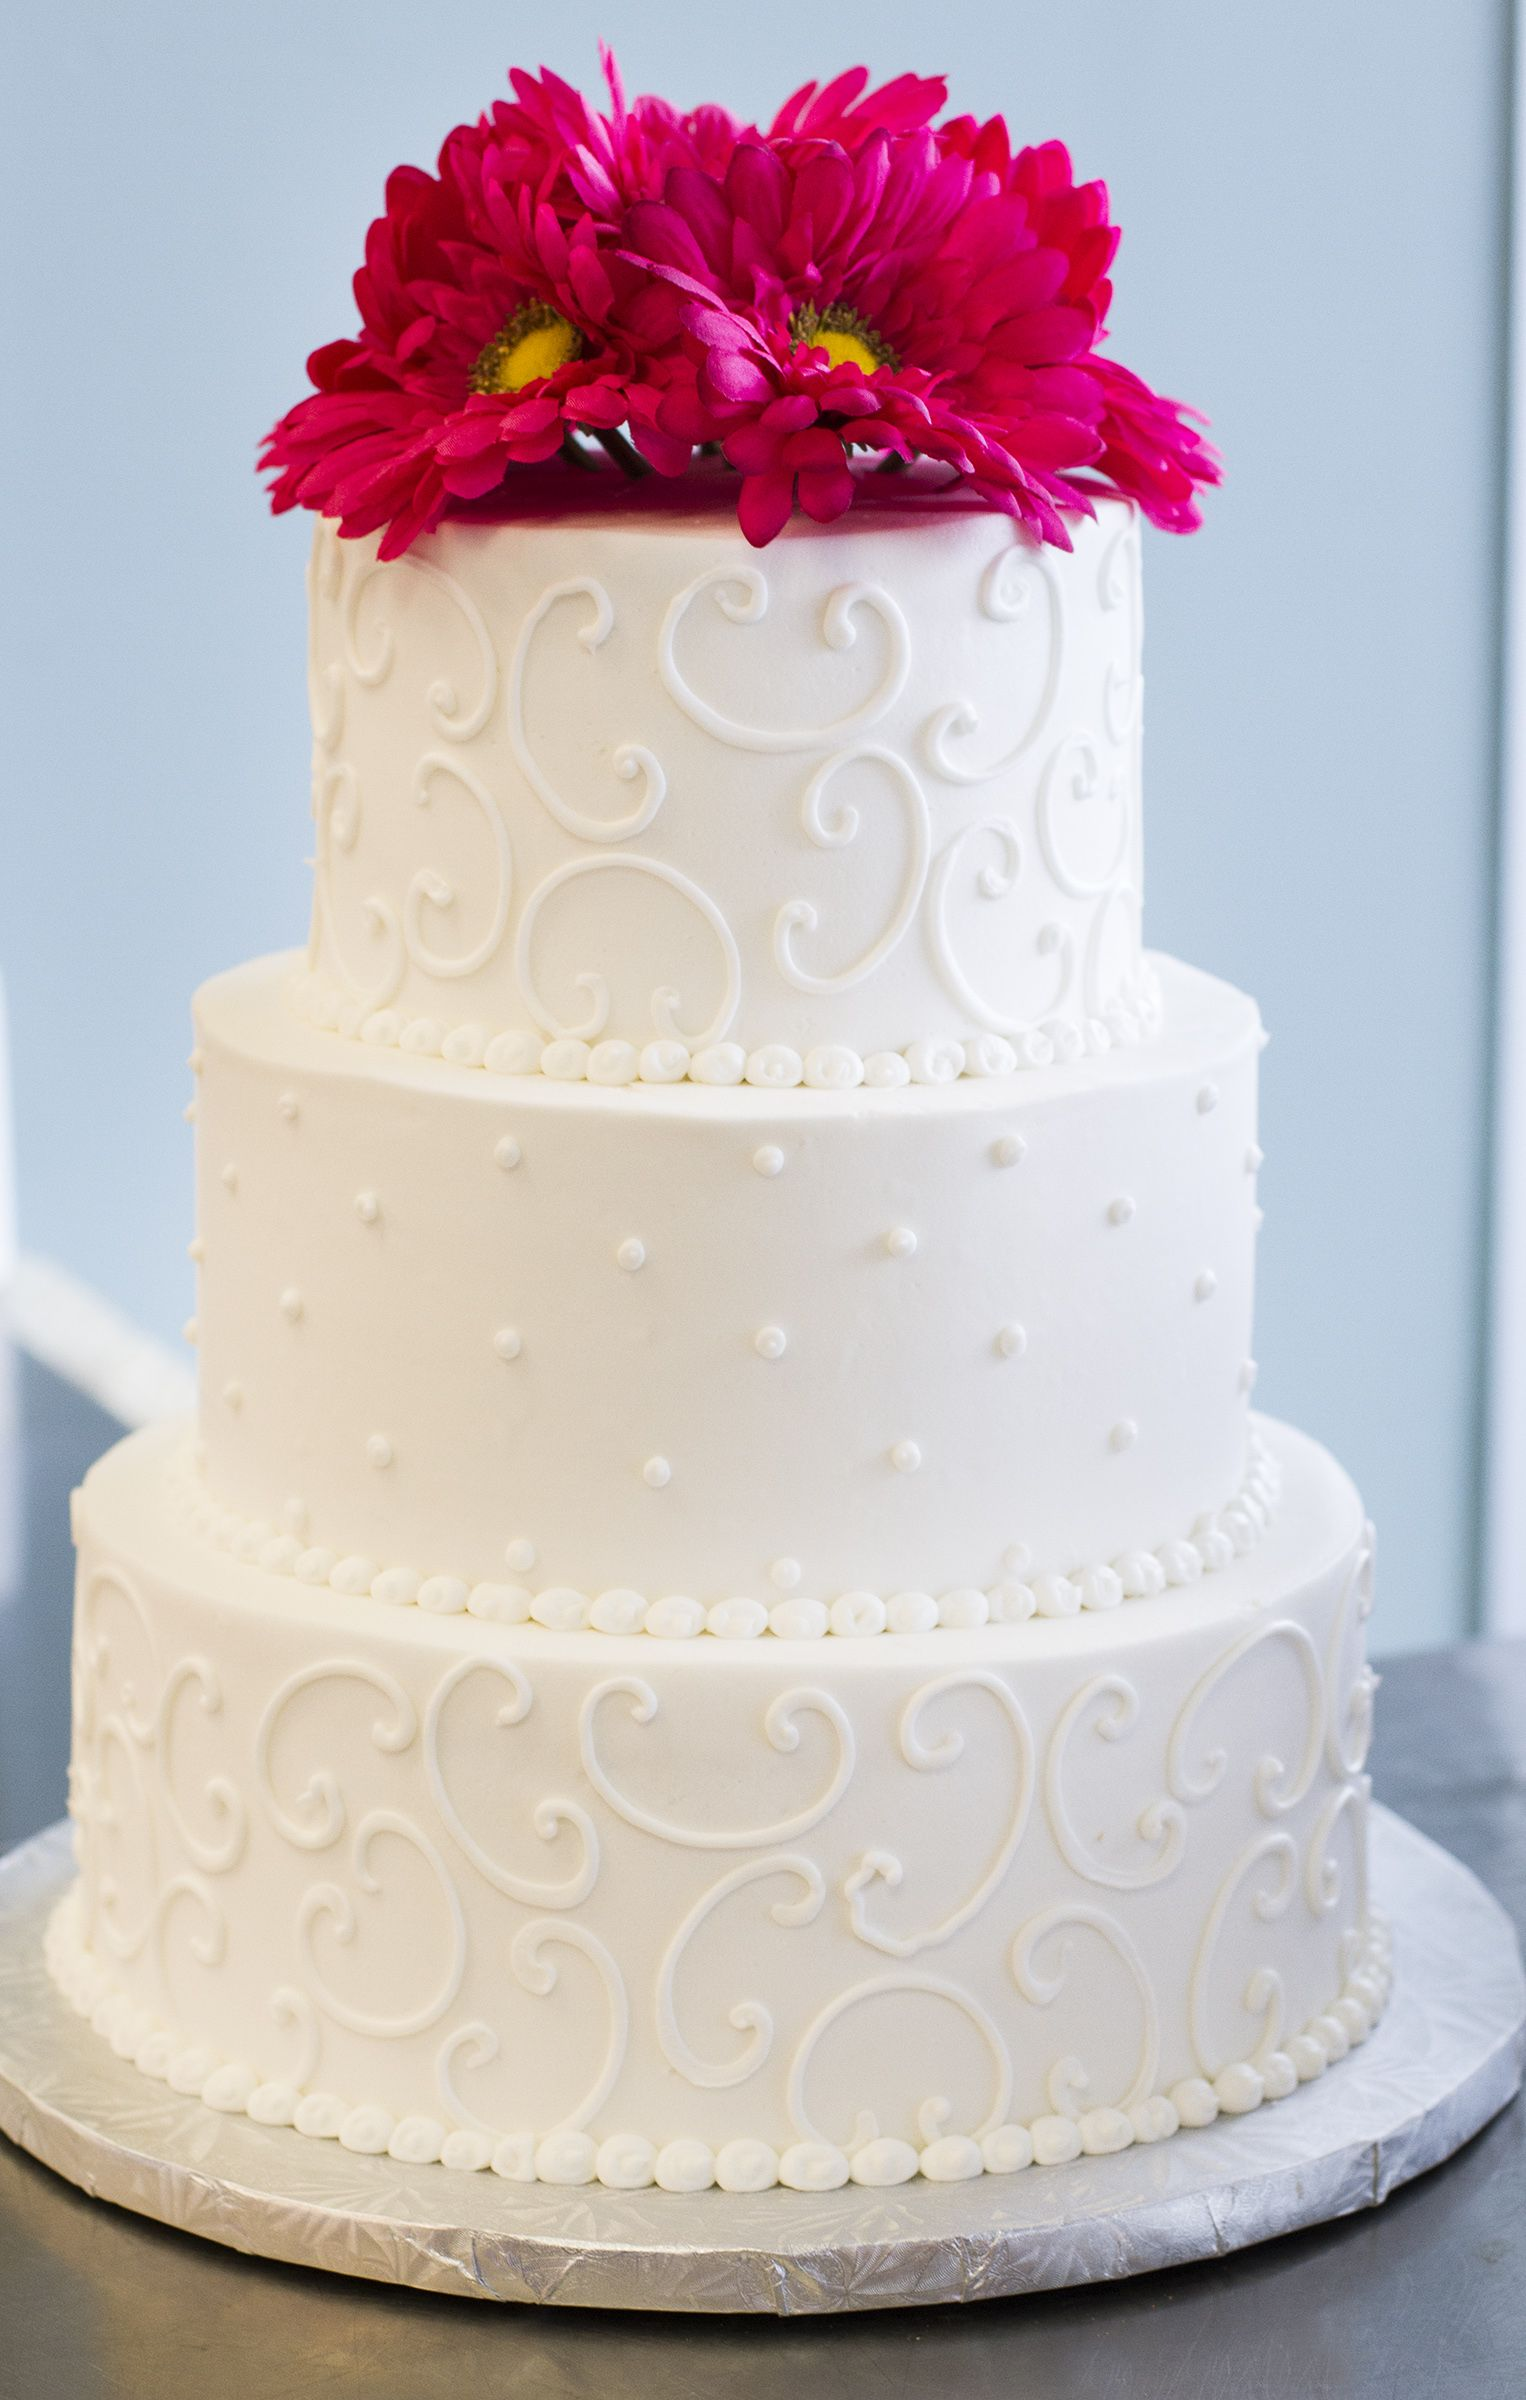 decoration wedding cake a simple beautiful white wedding cake with pink flowers 13434